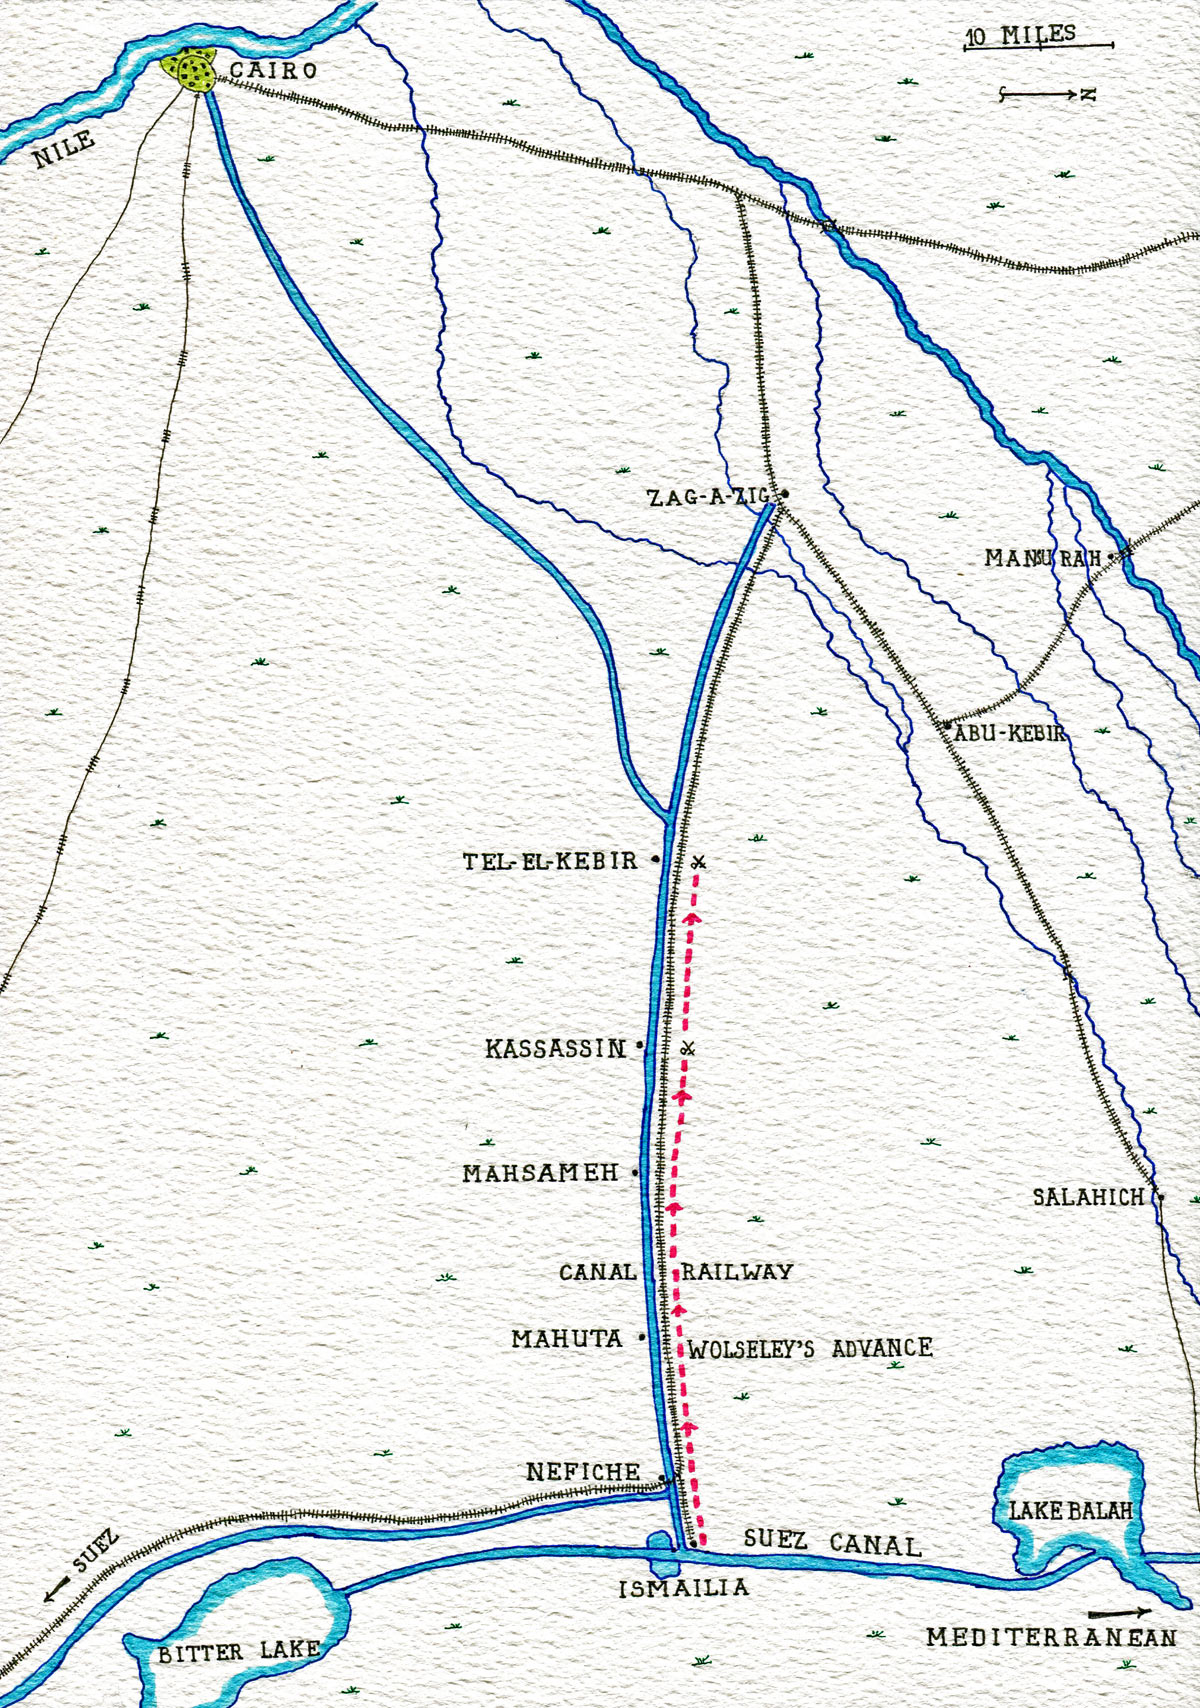 Map of the Tel-el-Kebir campaign, showing Wolseley's advance from Ismailia to Tel-el-Kebir: Battle of Tel-el-Kebir on 13th September 1882 in the Egyptian War: map by John Fawkes